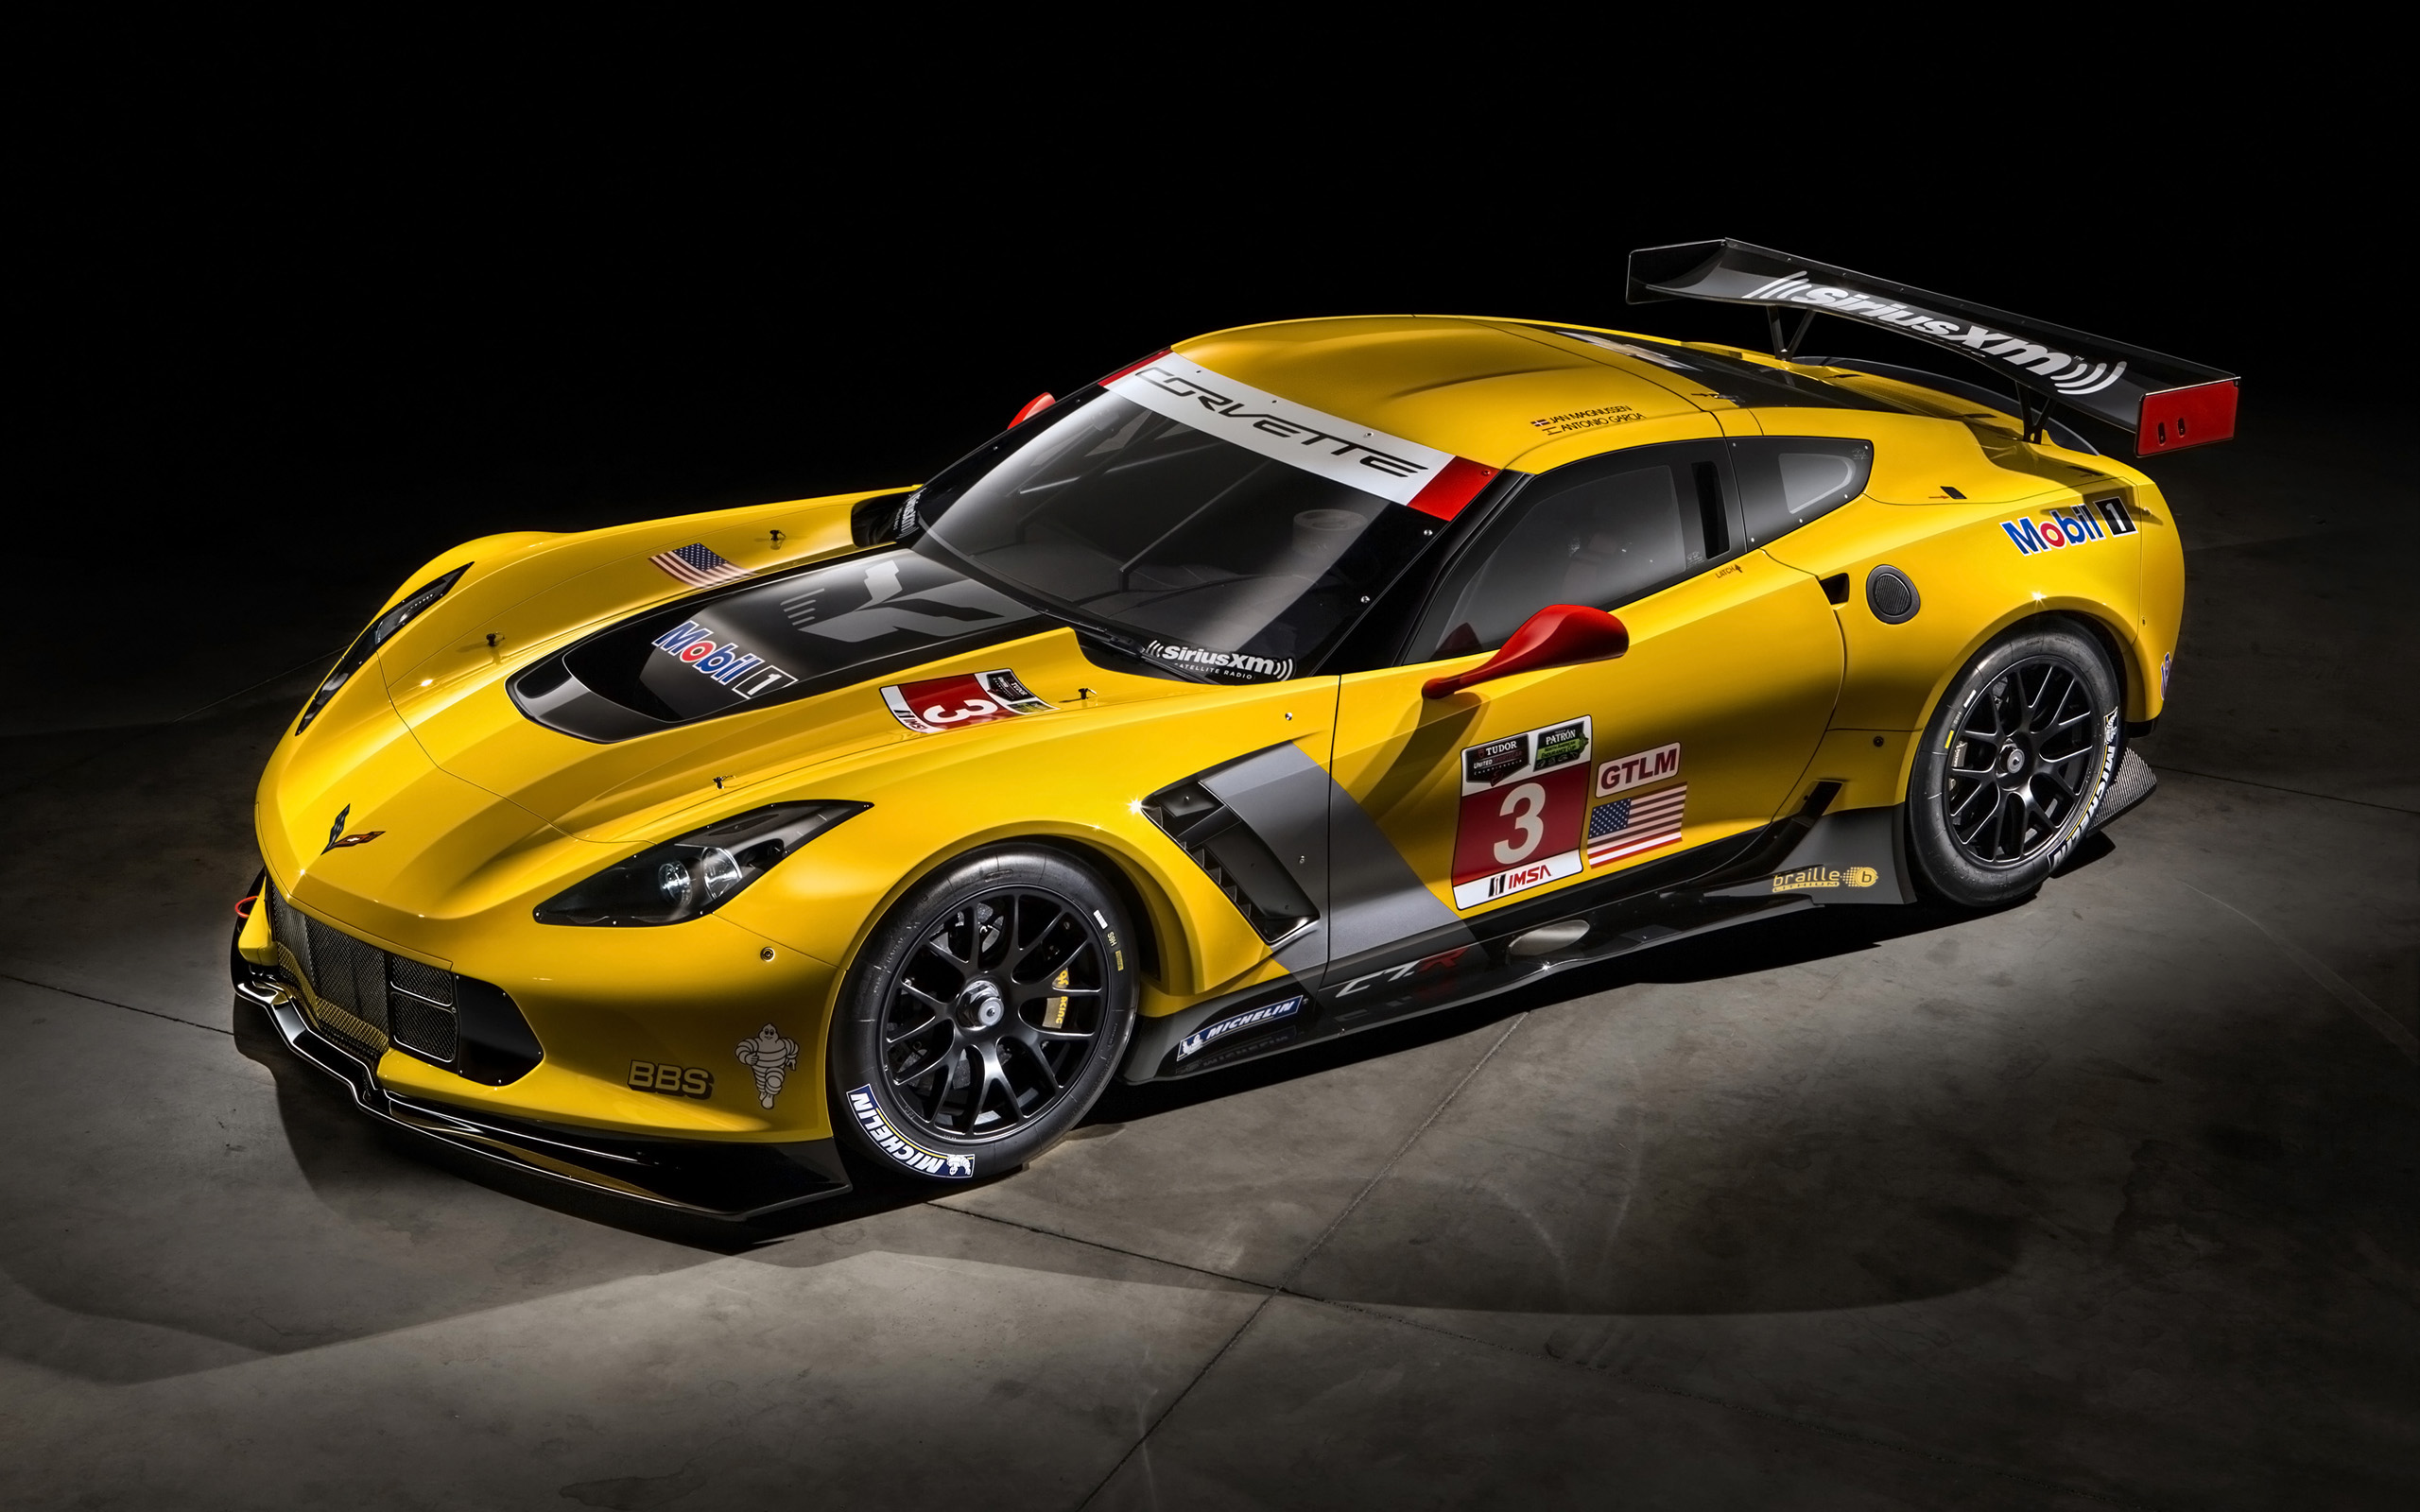 Chevrolet Corvette C7 R 2014 Wallpaper Hd Car Wallpapers